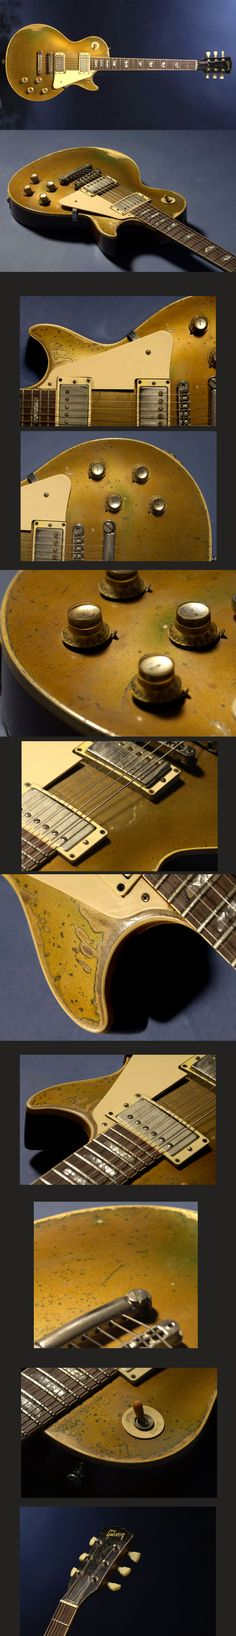 1968 Gibson Les Paul Std. Goldtop converted to PAFs...Gregor Hilden N°1 Guitar!!!